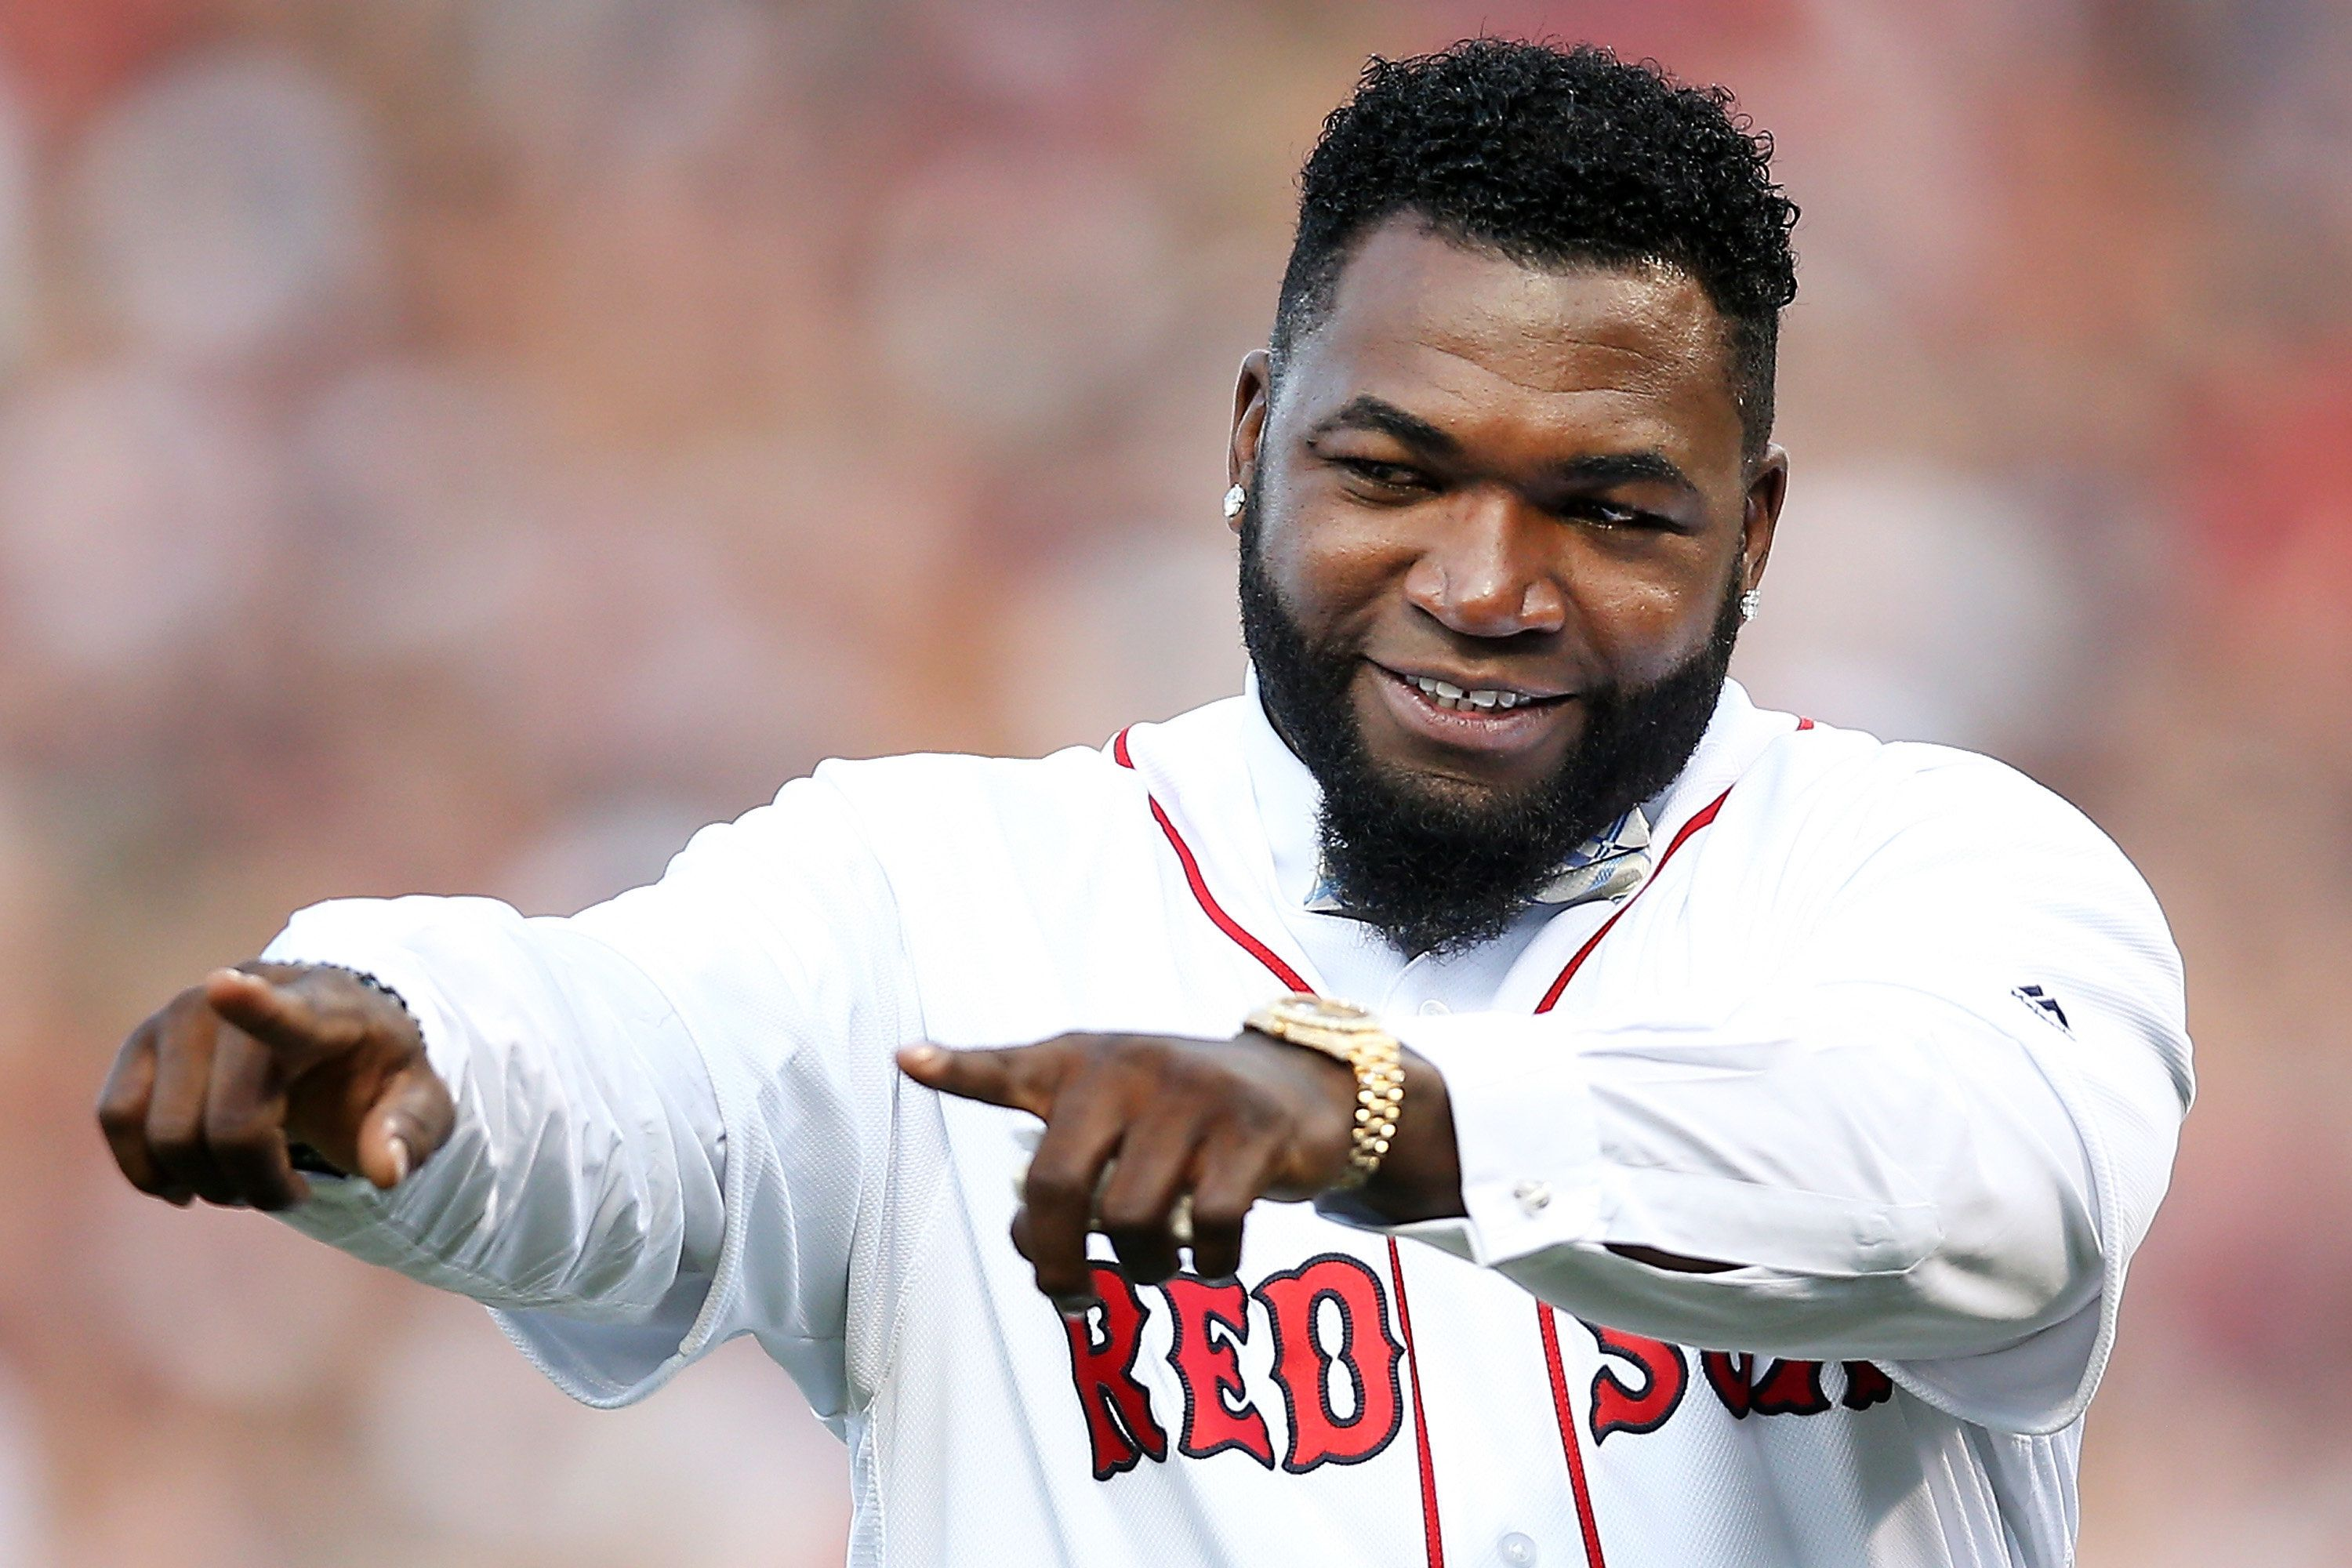 BOSTON, MA - JUNE 23:  Former Boston Red Sox player David Ortiz #34 reacts during his jersey retirement ceremony before a game against the Los Angeles Angels of Anaheim at Fenway Park on June 23, 2017 in Boston, Massachusetts.  (Photo by Adam Glanzman/Getty Images)